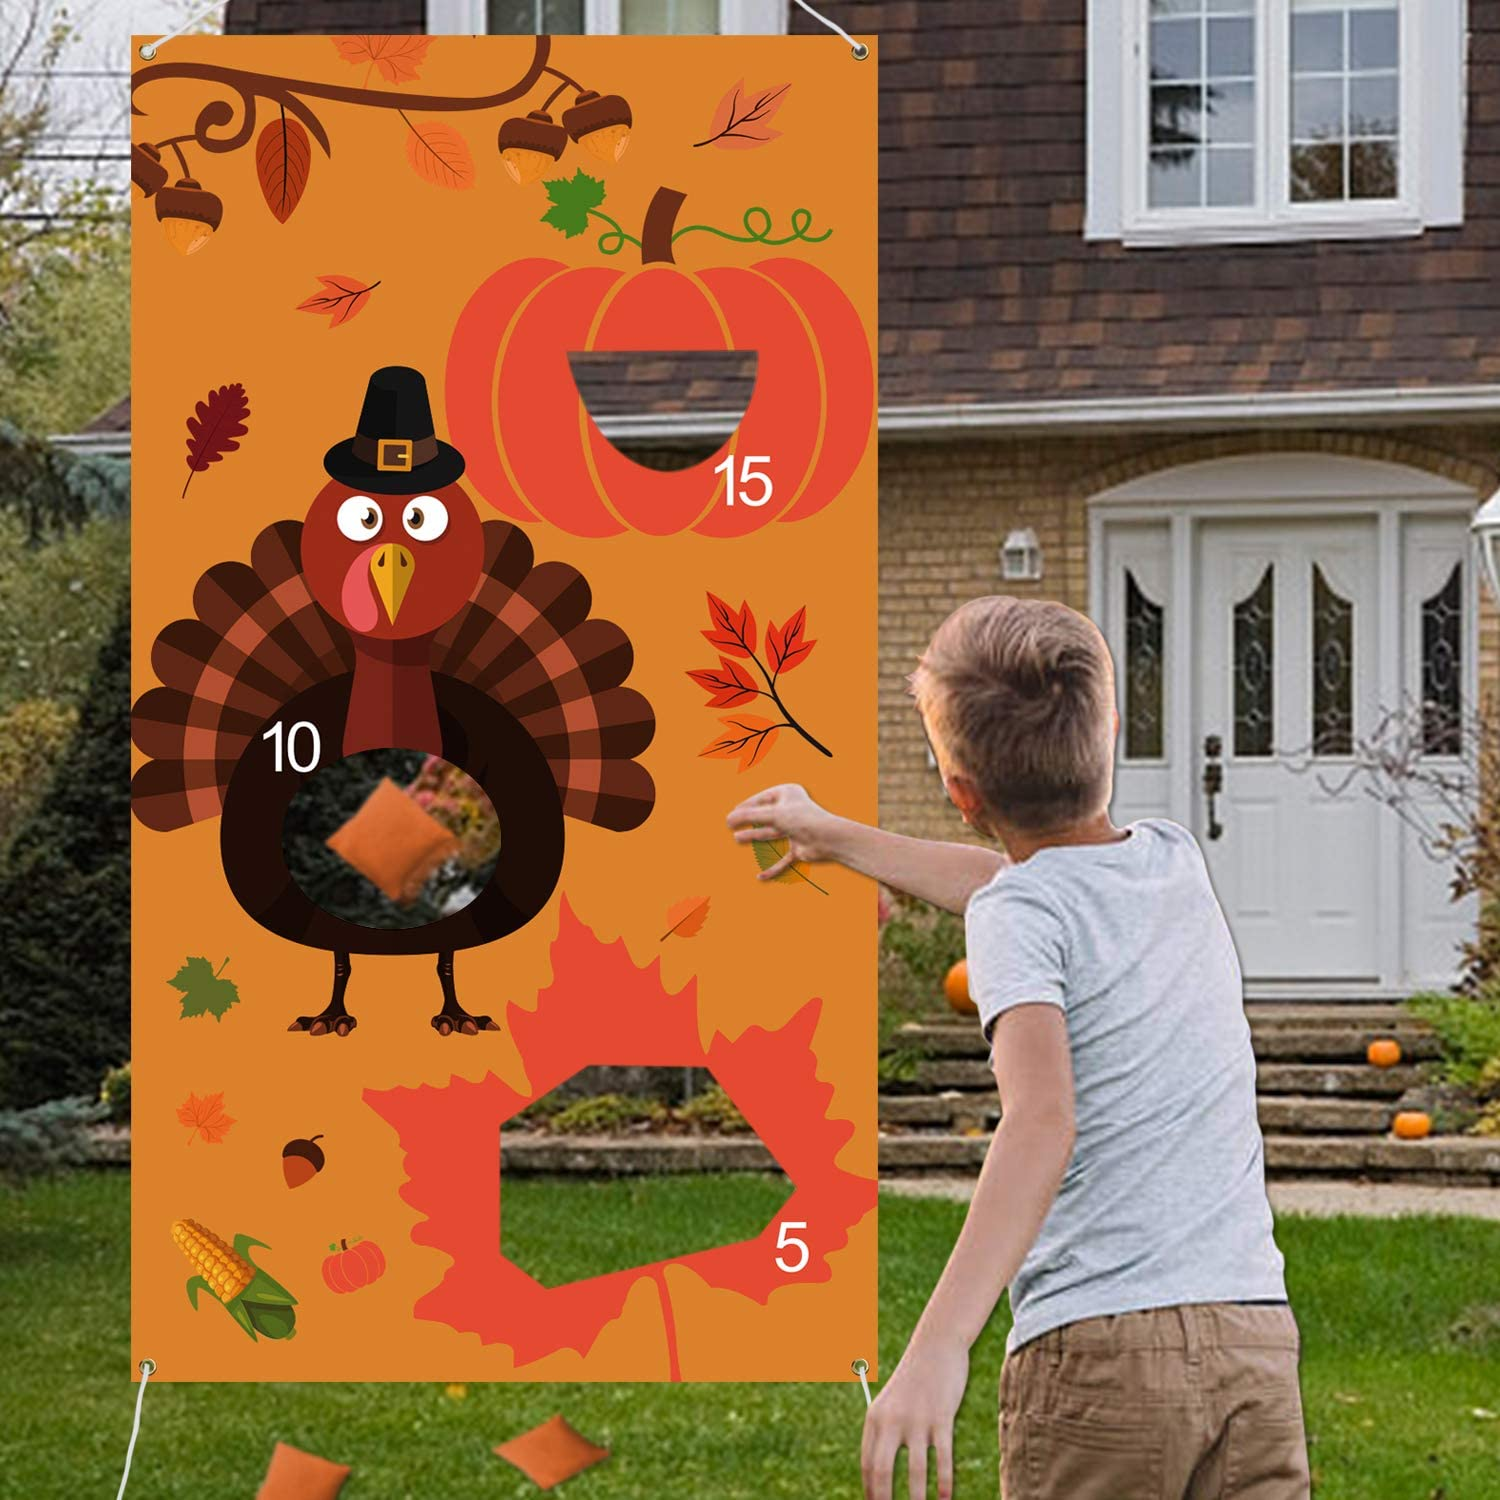 Tifeson Thanksgiving Games - Thanksgiving Bean Bag Toss Game with 3 Bean Bags for Kids Adults - Turkey Hanging Toss Game Banner Fall Thanksgivng Decorations Supplies